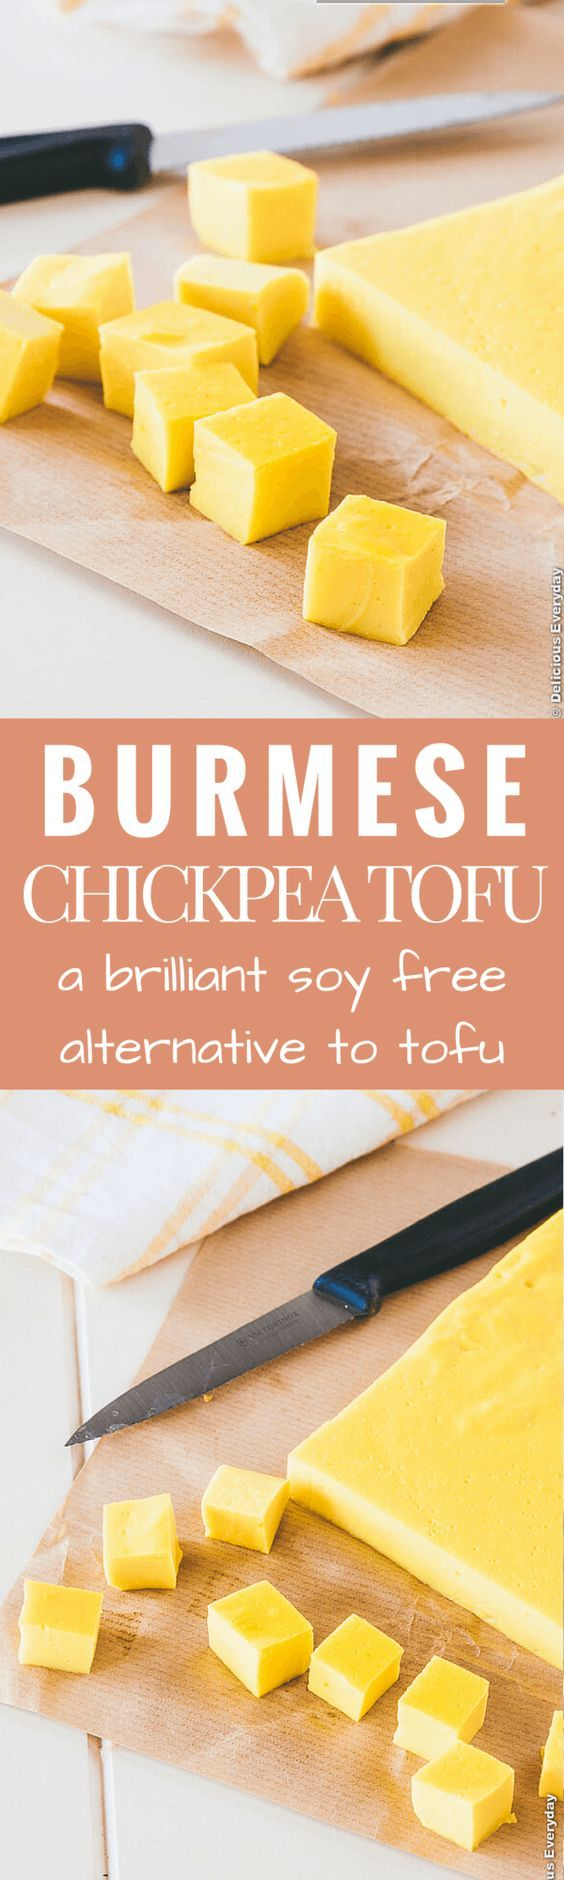 Looking for a soy free alternative to tofu? This Burmese Chickpea Tofu is easy to make and is a healthy and delicious source of protein. Great in salads, stir fries and soups. | Get the recipe at Delicious Everyday: